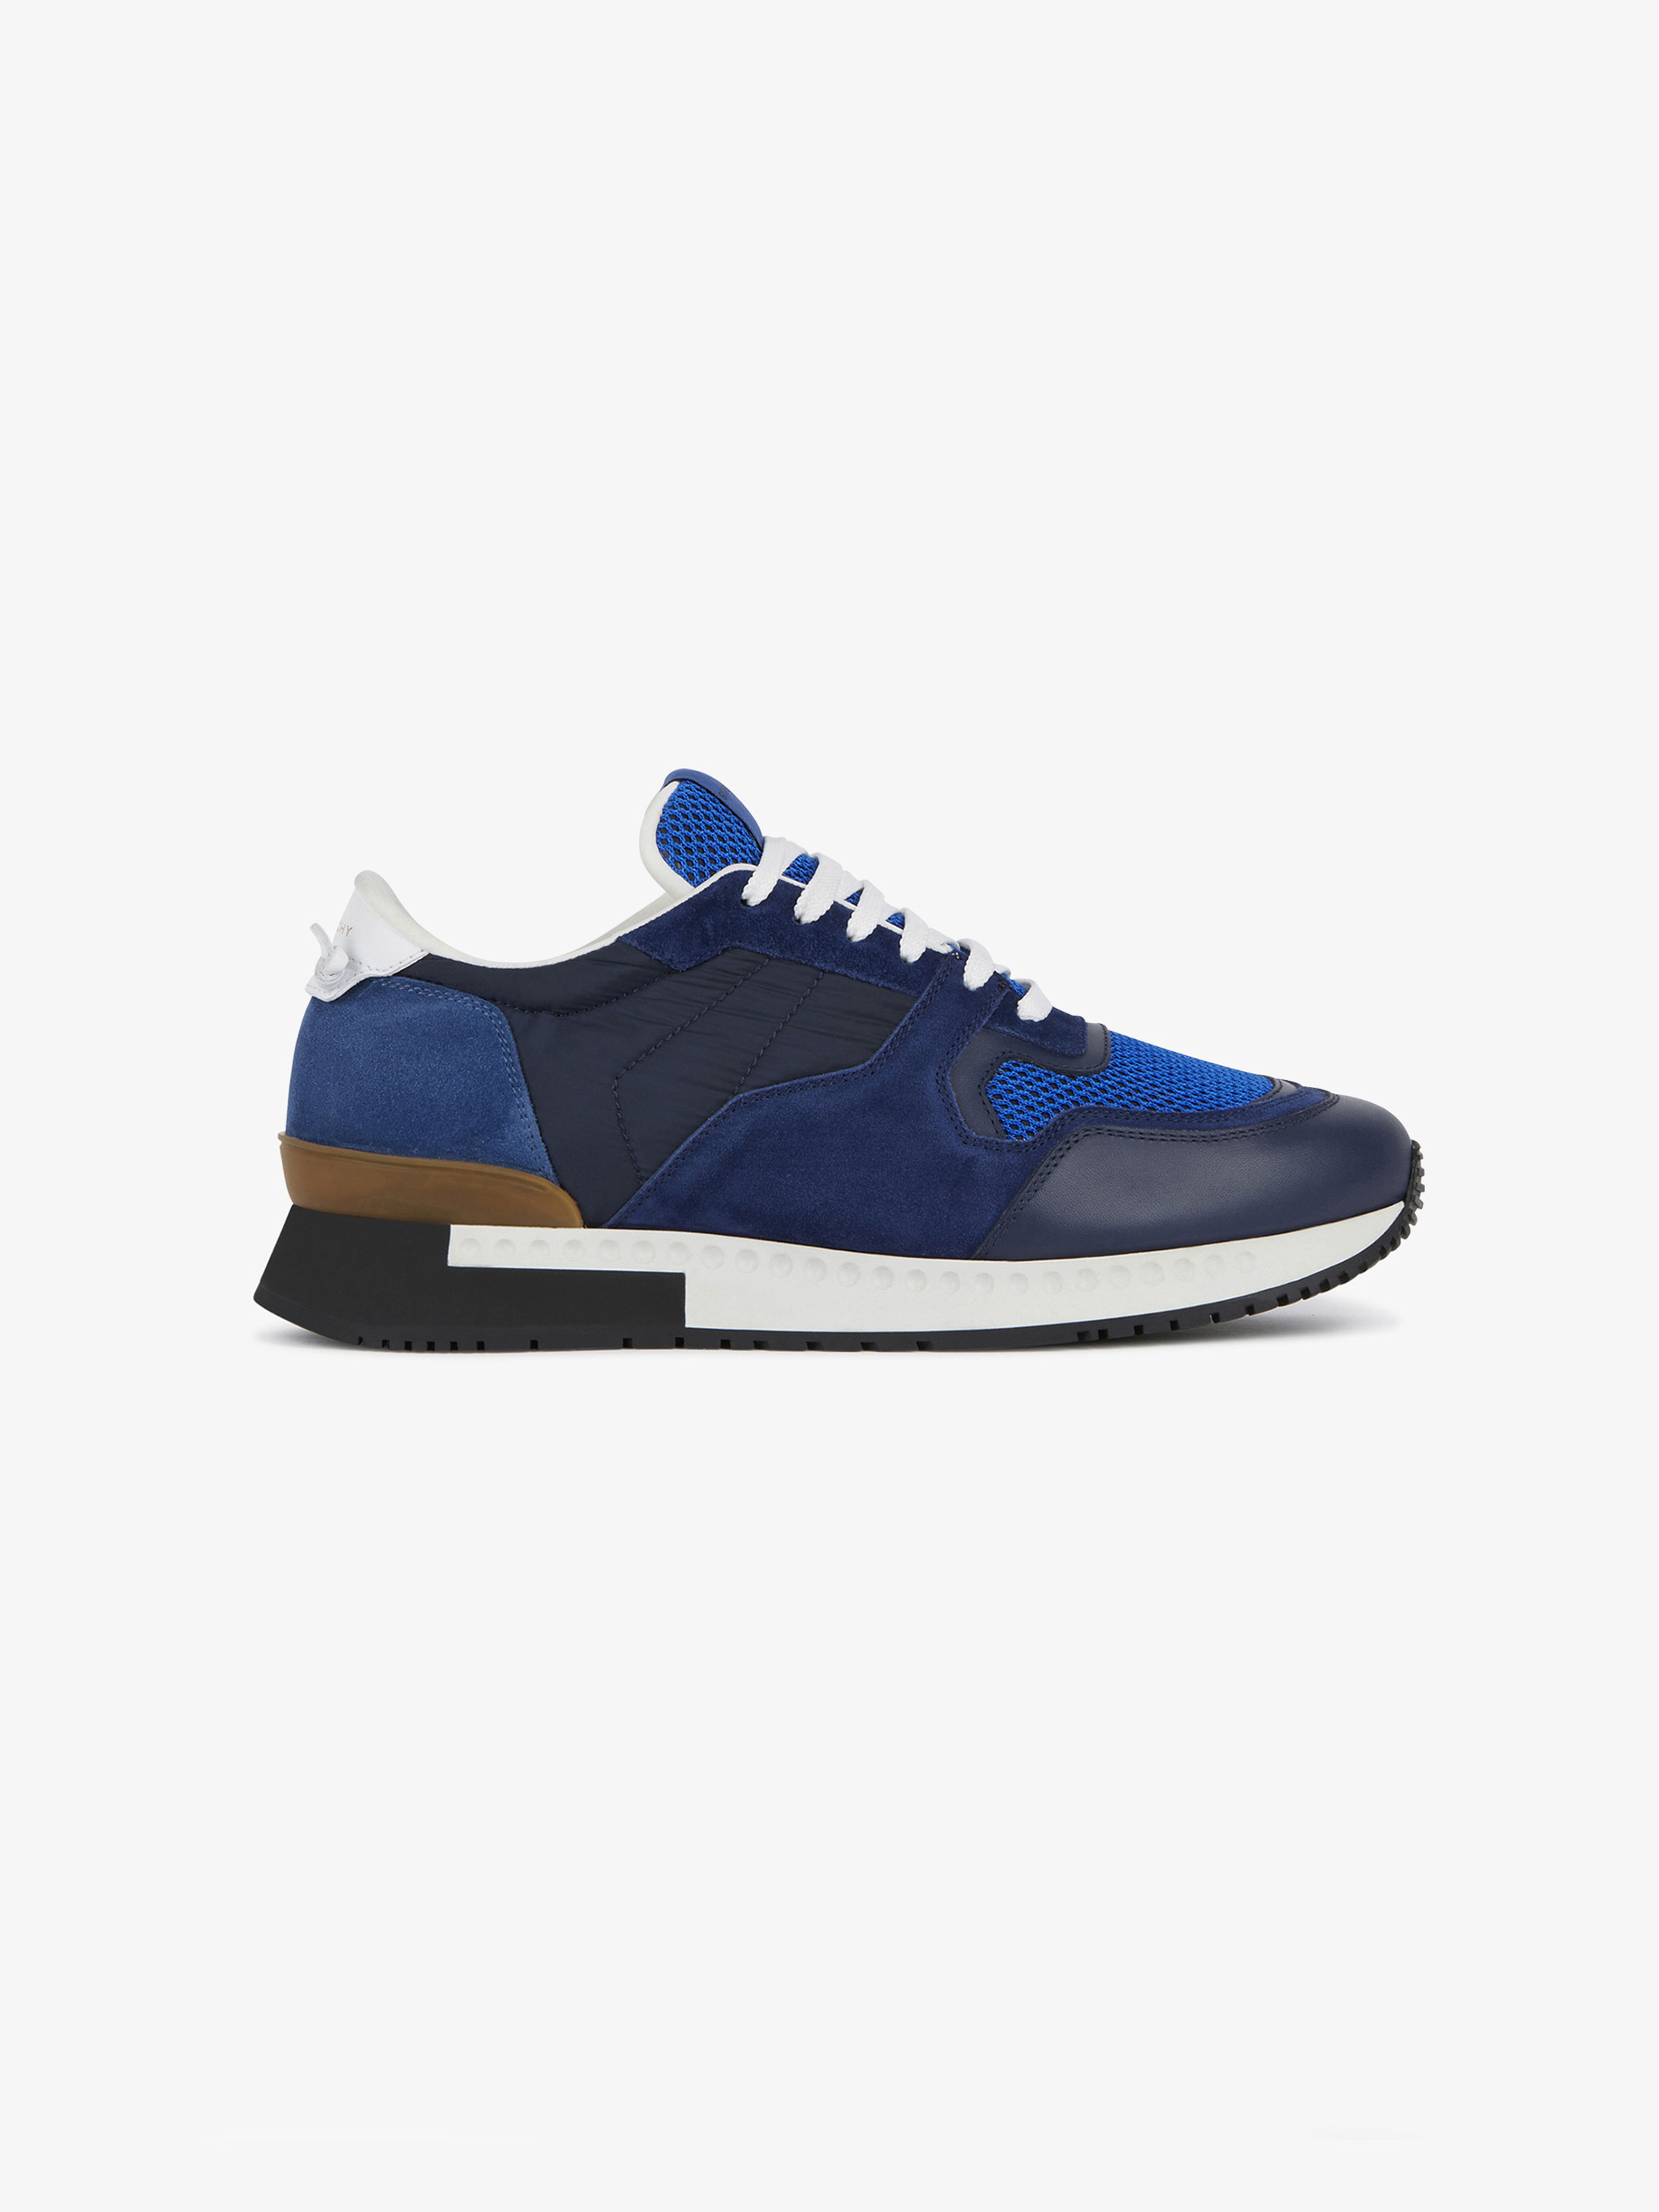 Runner sneakers in suede and nylon